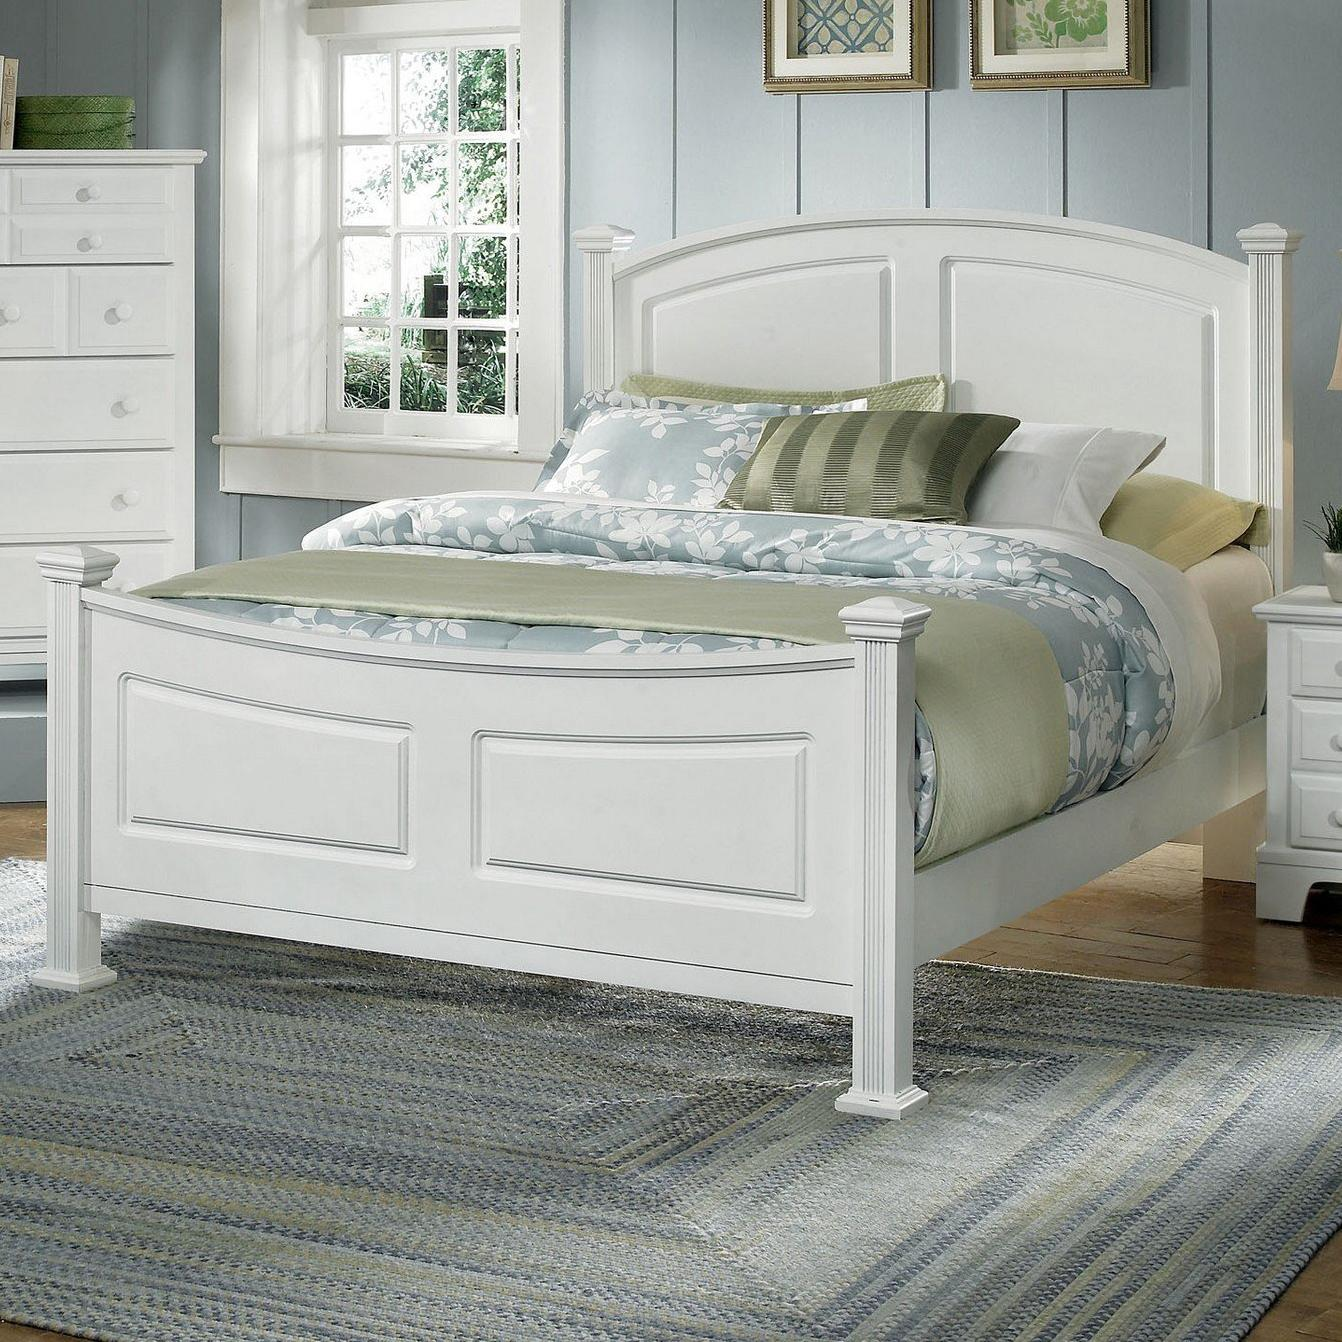 Hamilton/Franklin Queen Panel Bed by Vaughan Bassett at Johnny Janosik